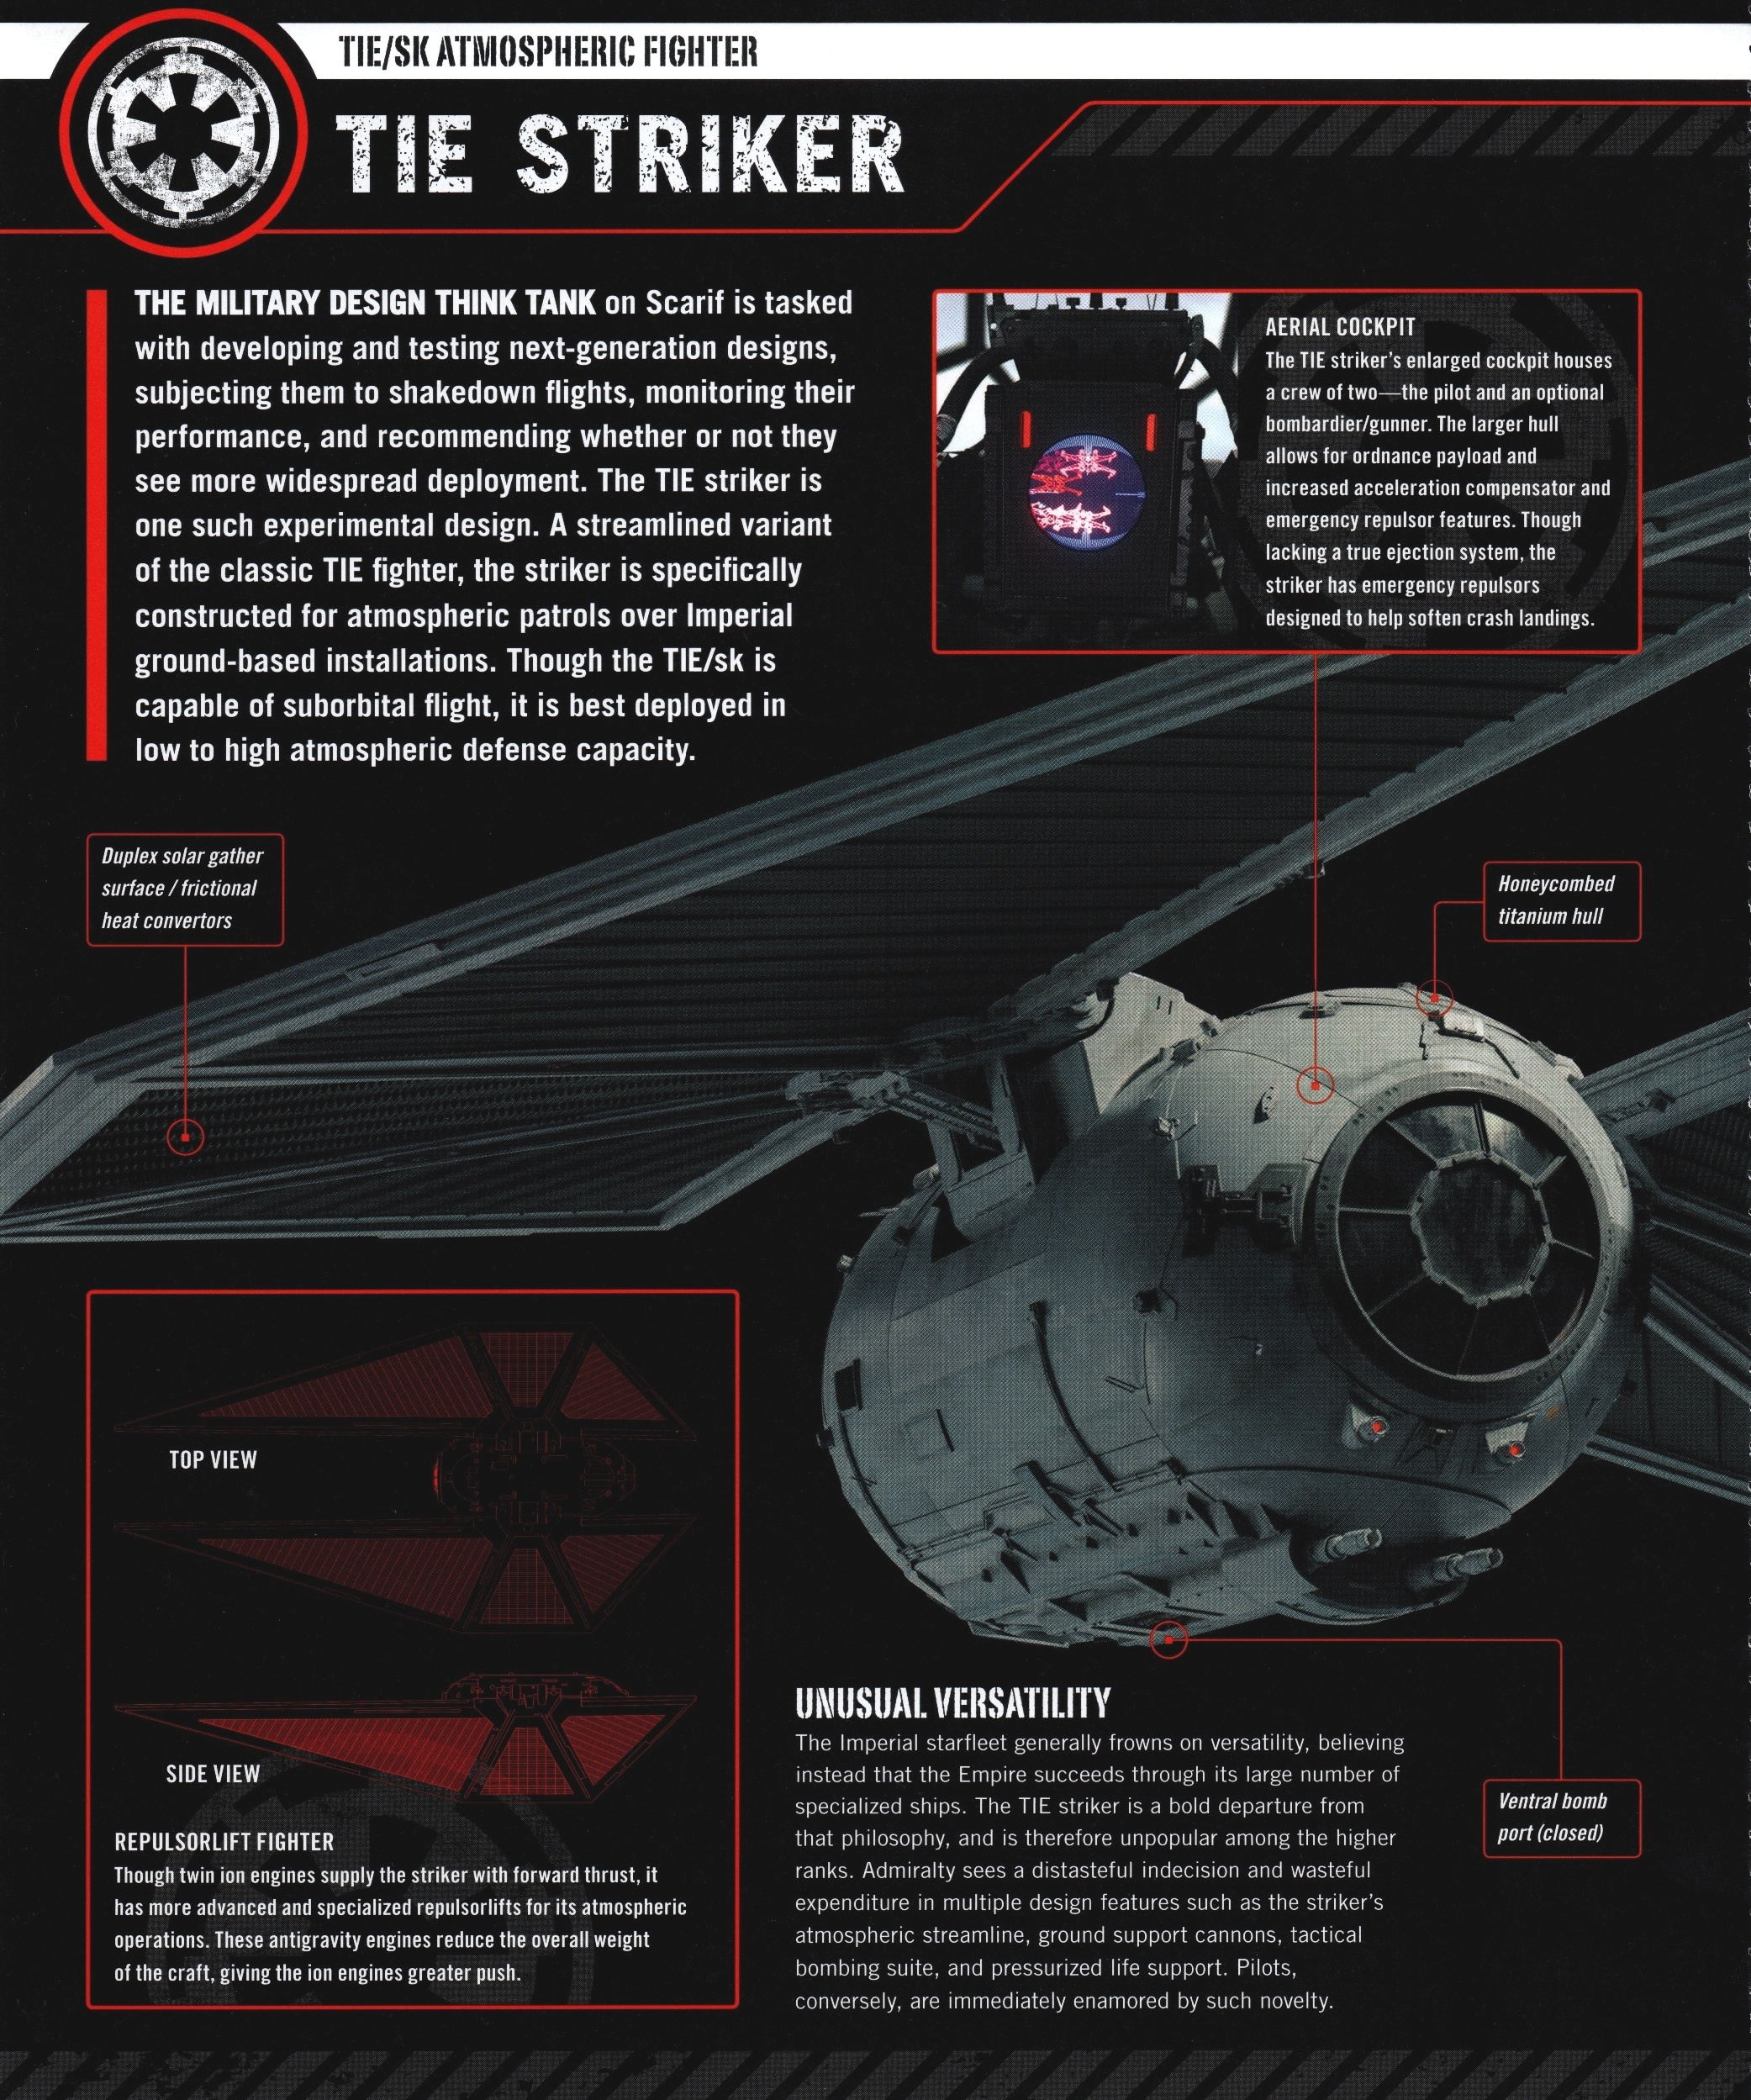 Rogue One Ultimate Visual Guide (b0bafett_Empire) p178